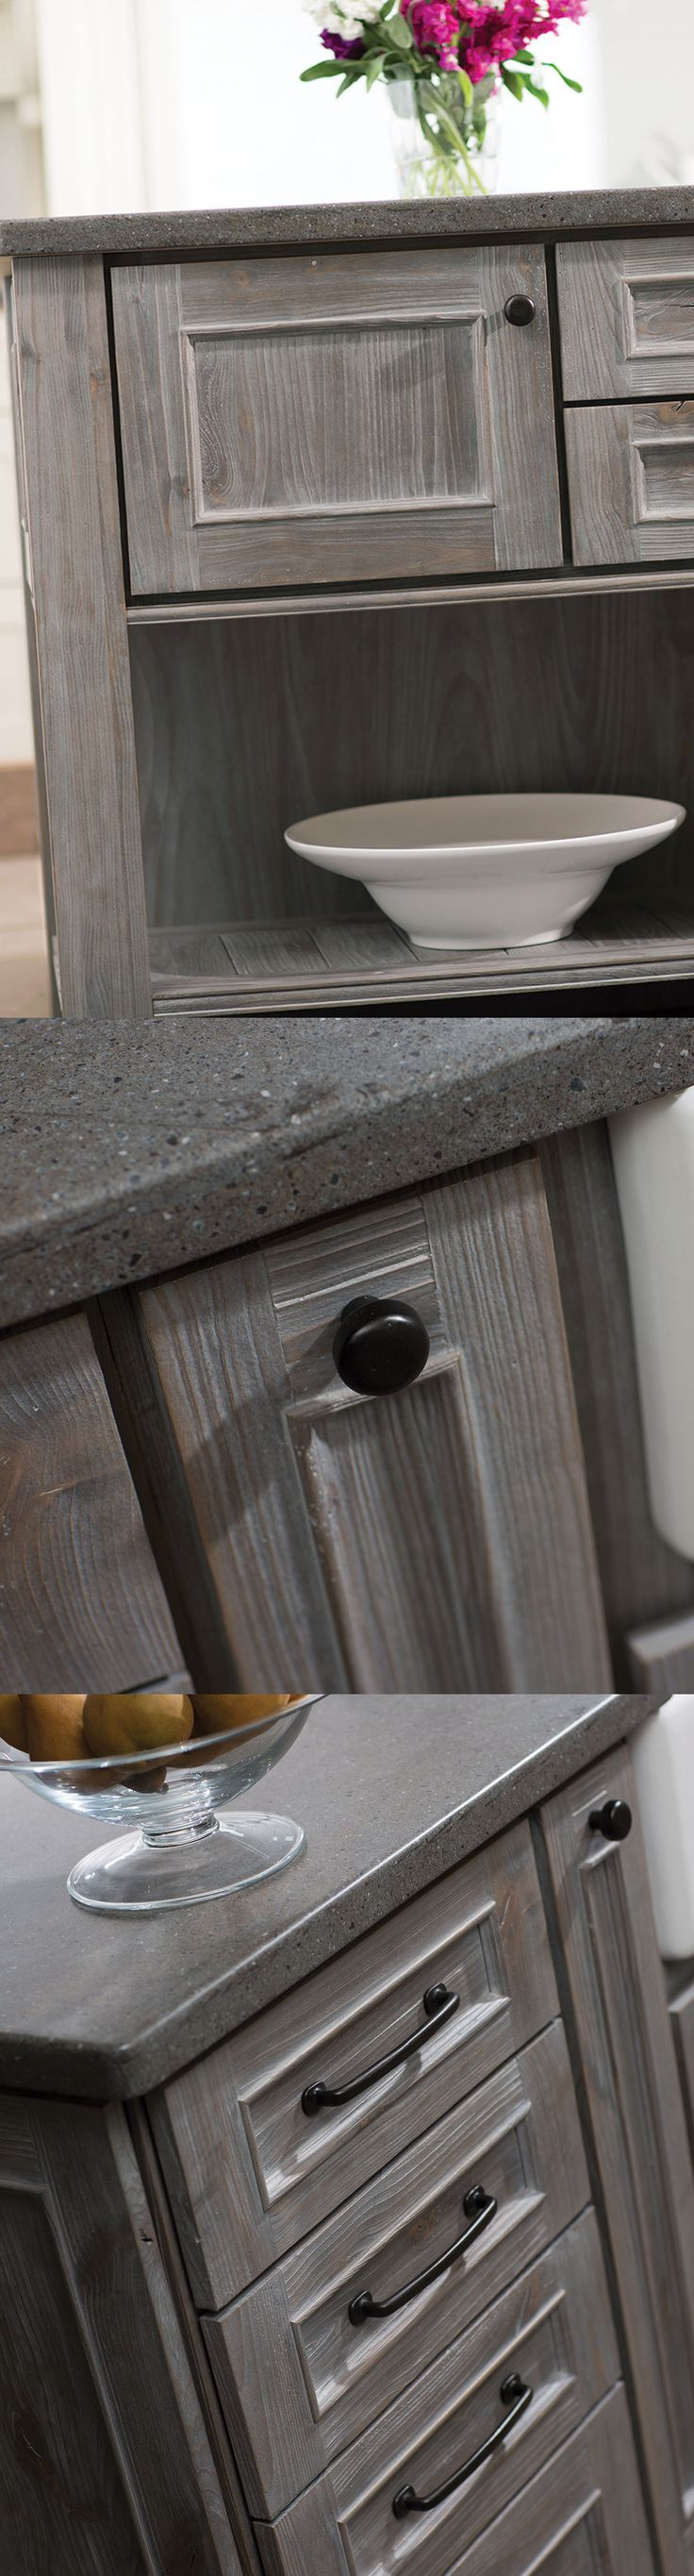 Create a dramatic, one-of-a-kind kitchen island with Dura Supreme's Weathered Finish that resembles reclaimed wood/driftwood.